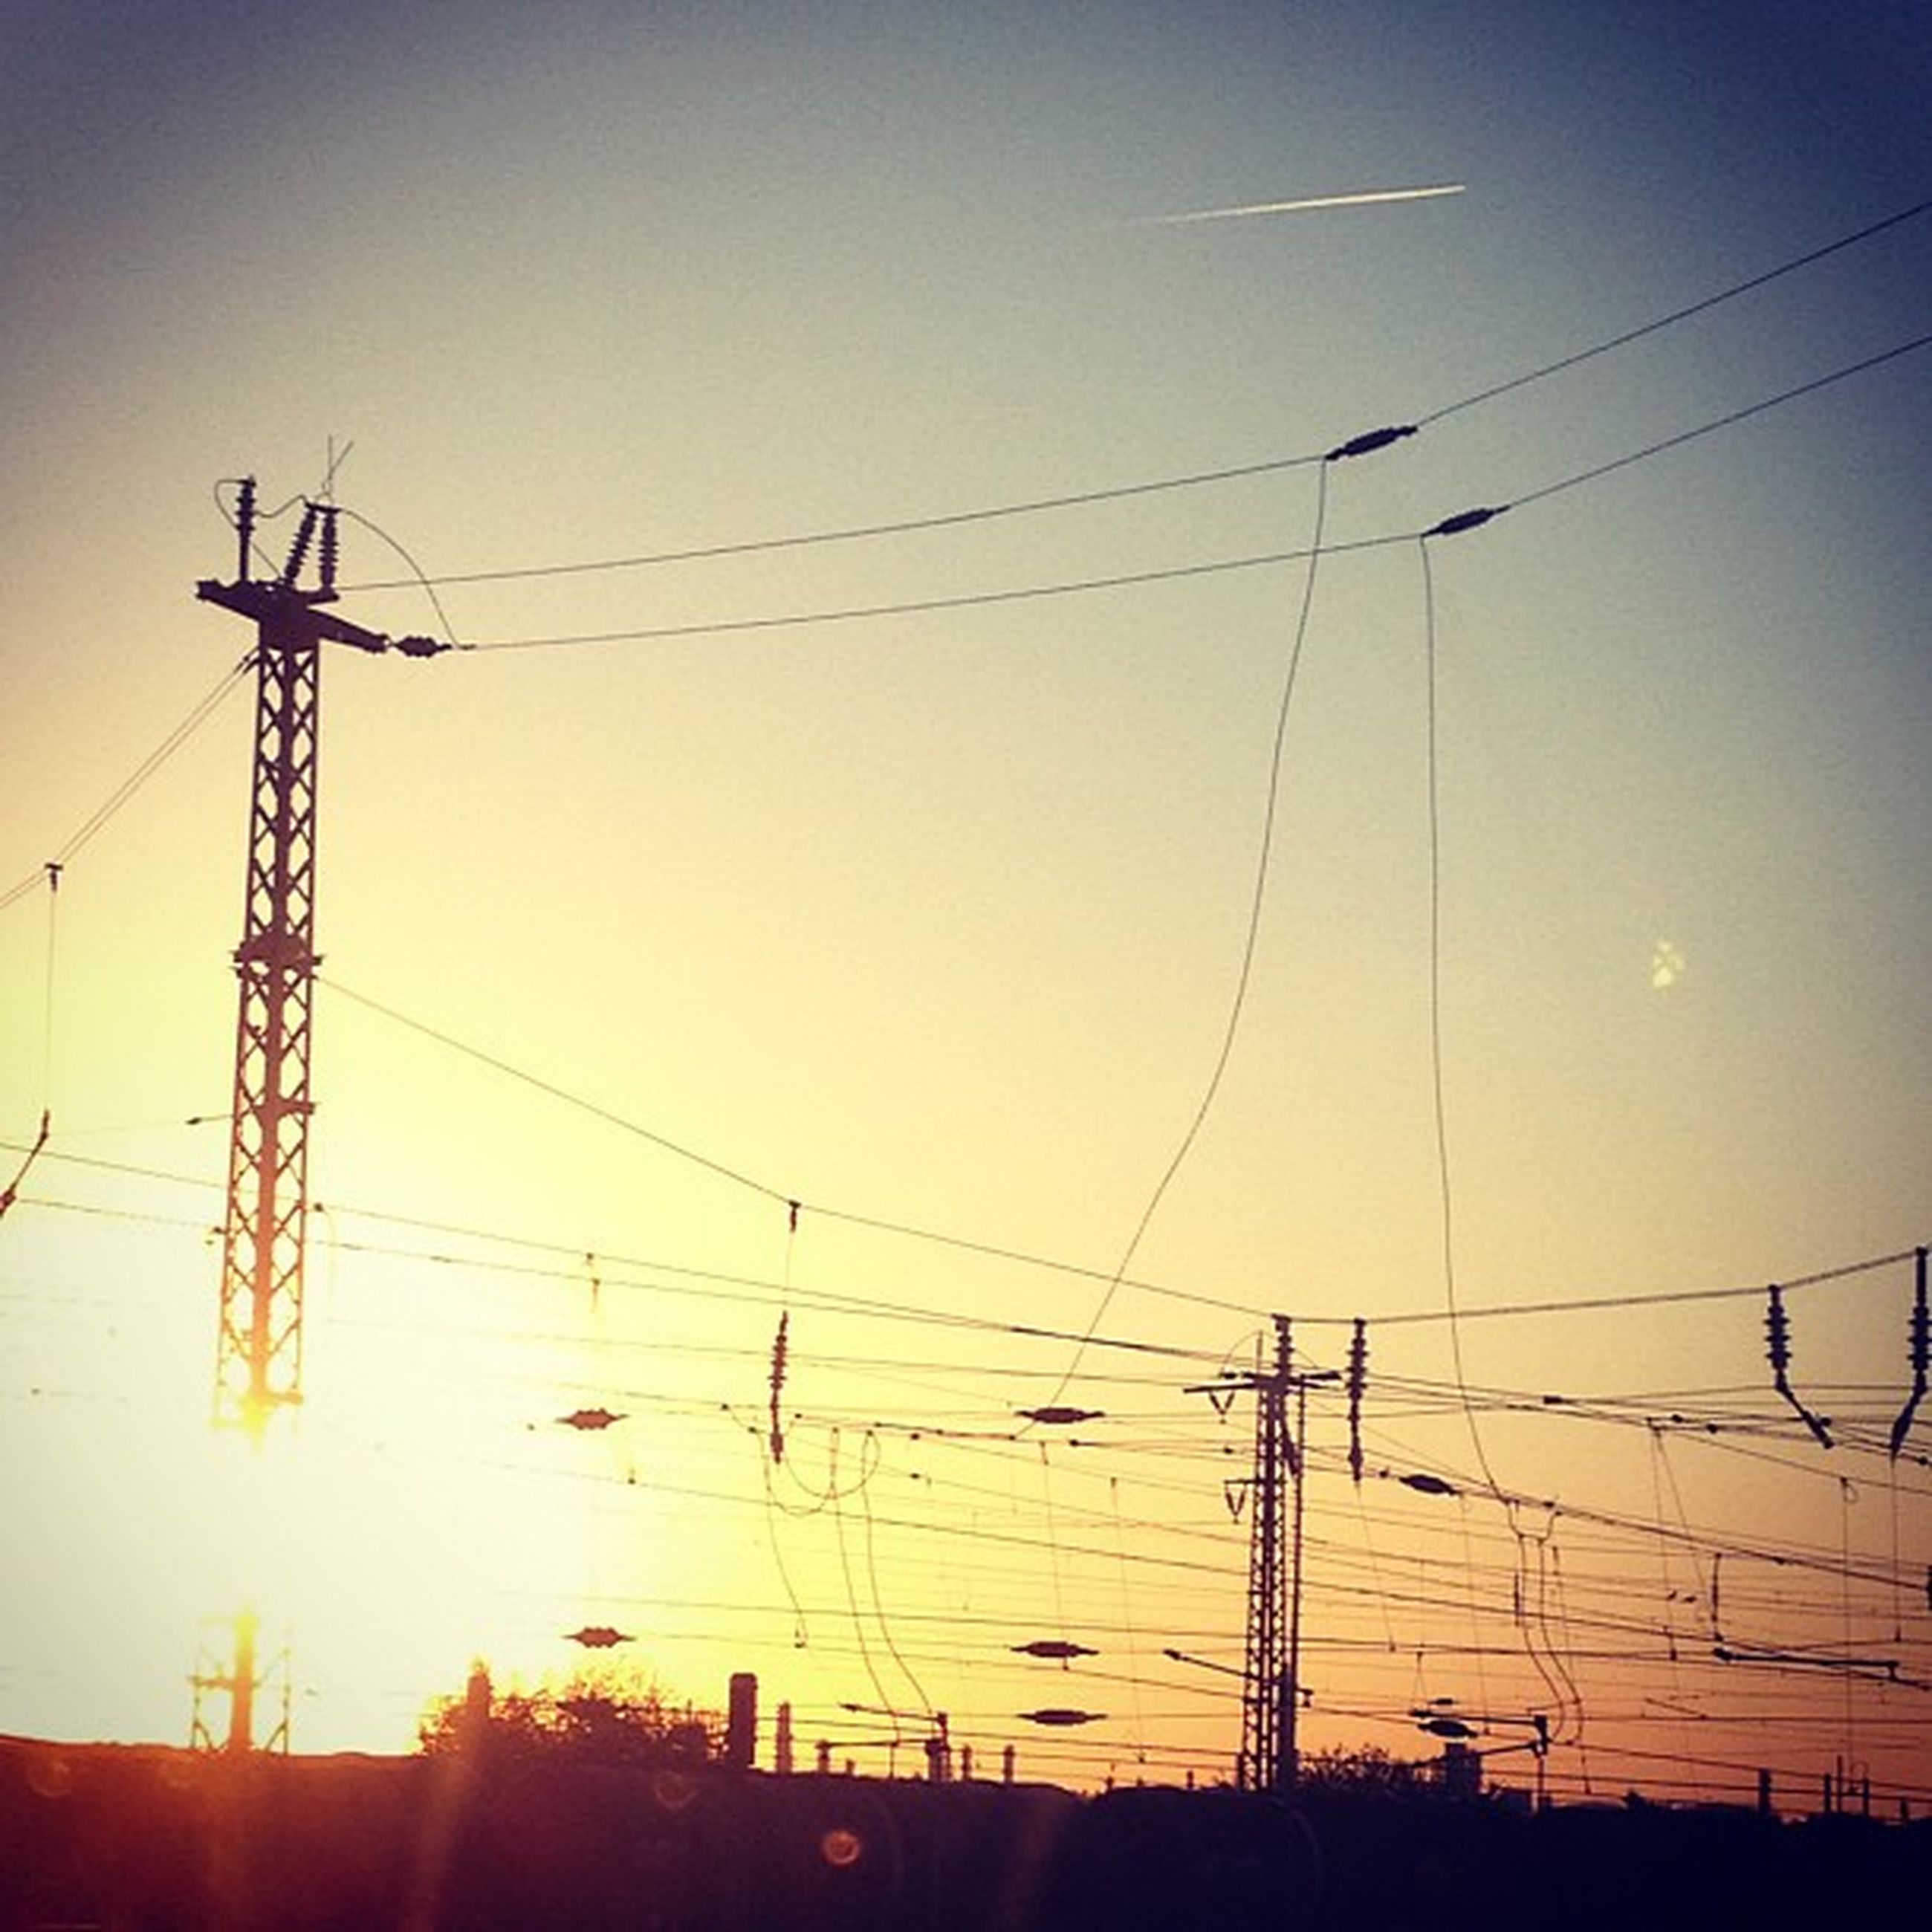 power line, electricity pylon, power supply, electricity, fuel and power generation, cable, connection, technology, sunset, low angle view, silhouette, power cable, clear sky, sky, complexity, sun, electricity tower, outdoors, no people, sunlight